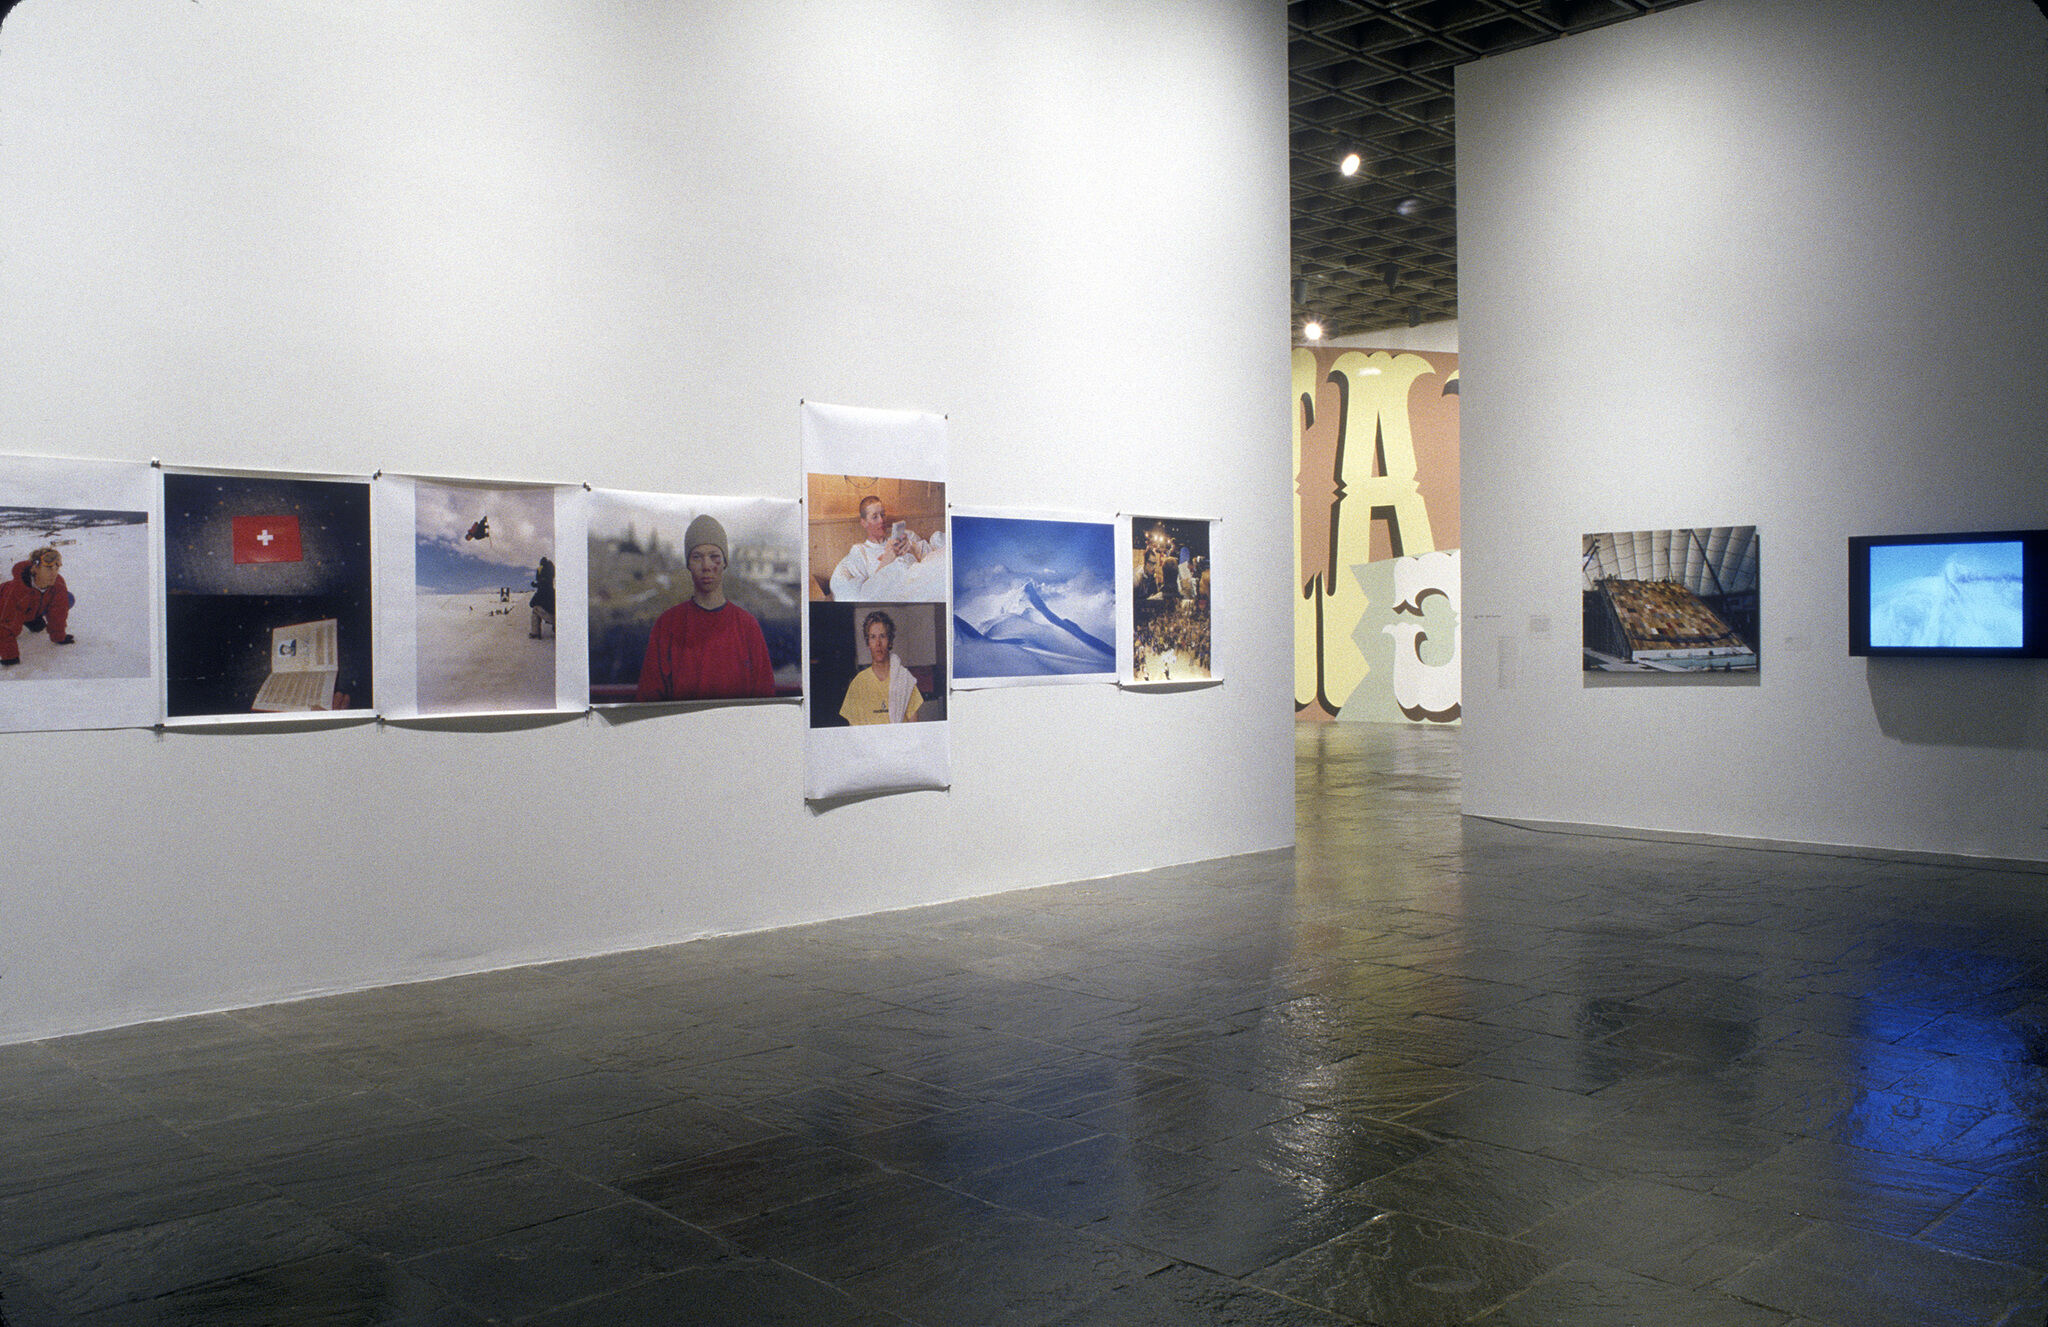 A gallery filled with photographs on display.